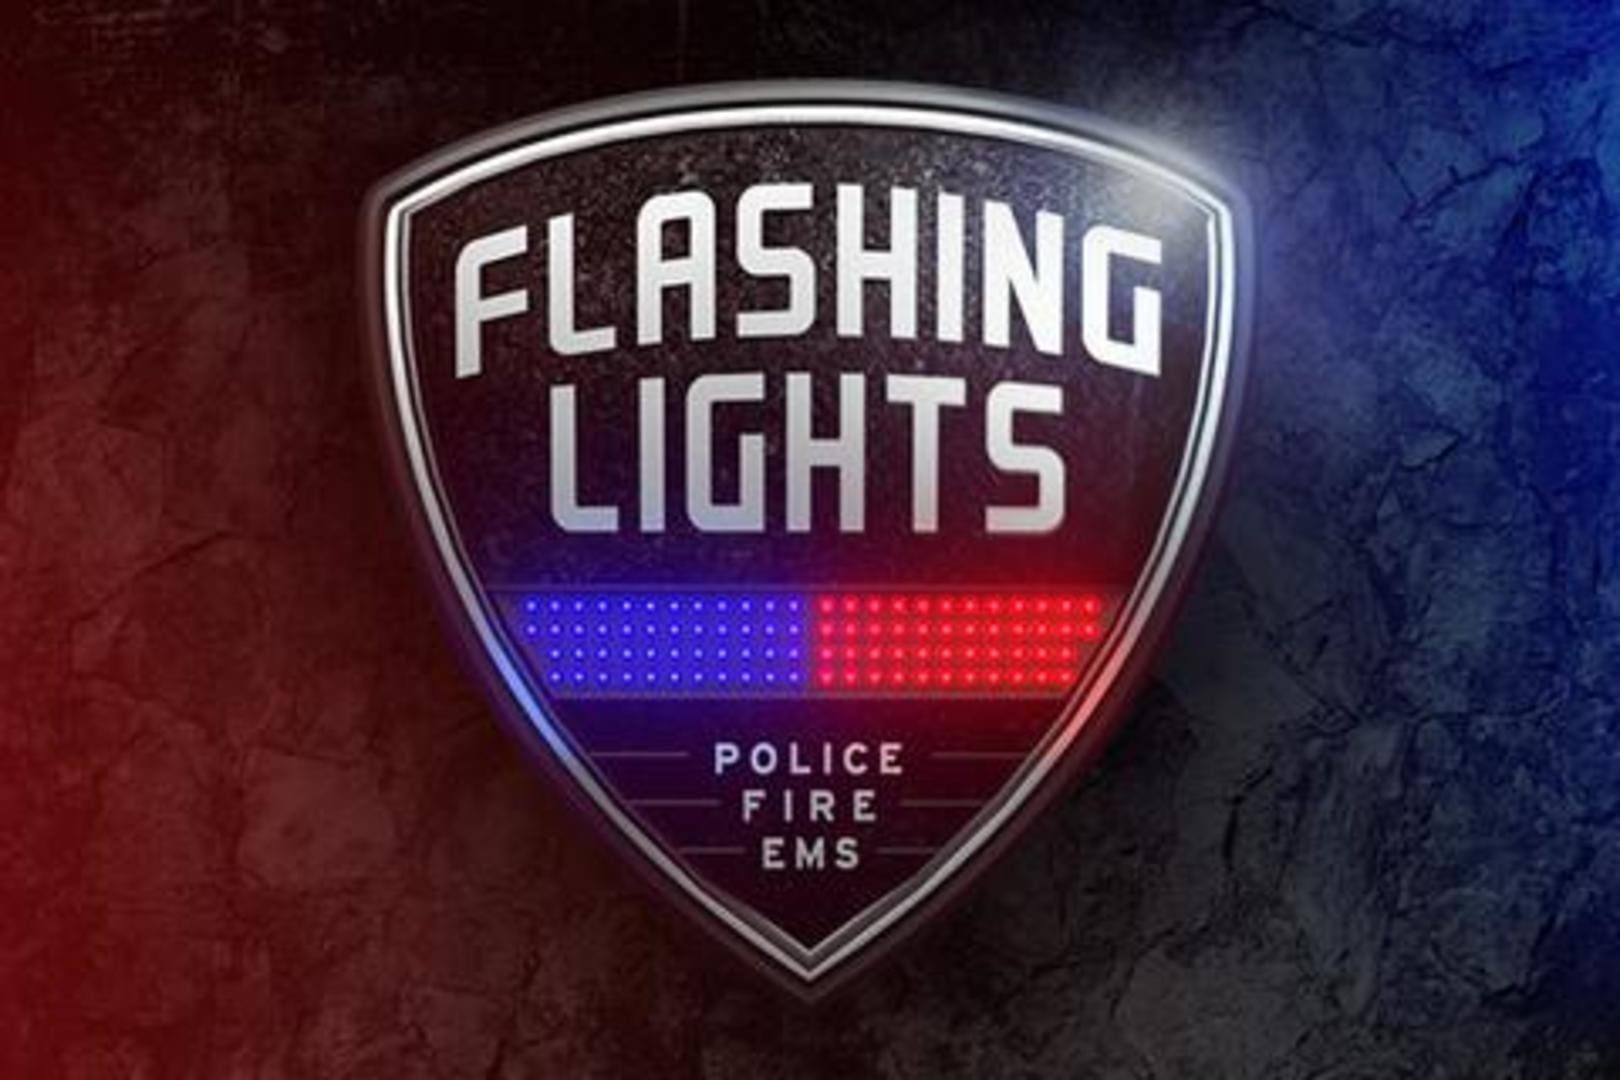 Buy Cheap Flashing Lights - Police Fire EMS CD Keys Online